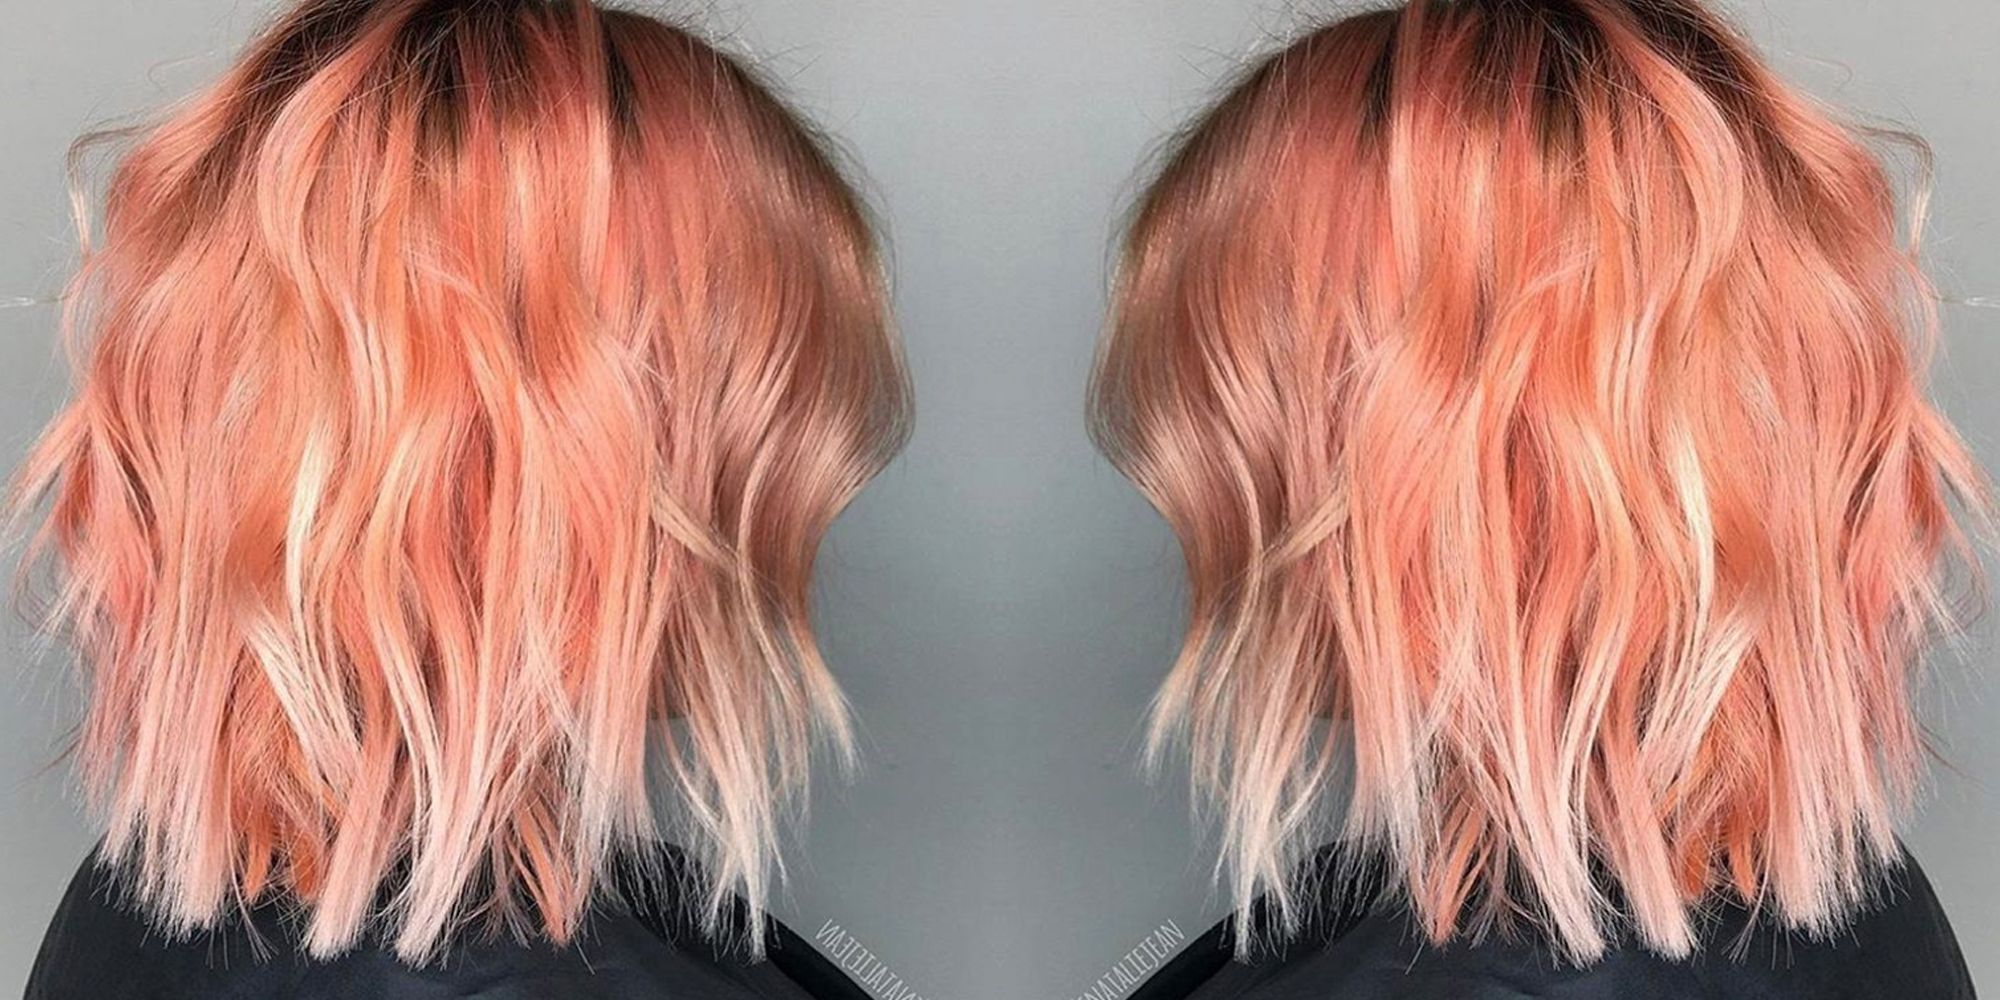 Blorange Hair Color Ideas Red Orange Hair Color Trend For 2017